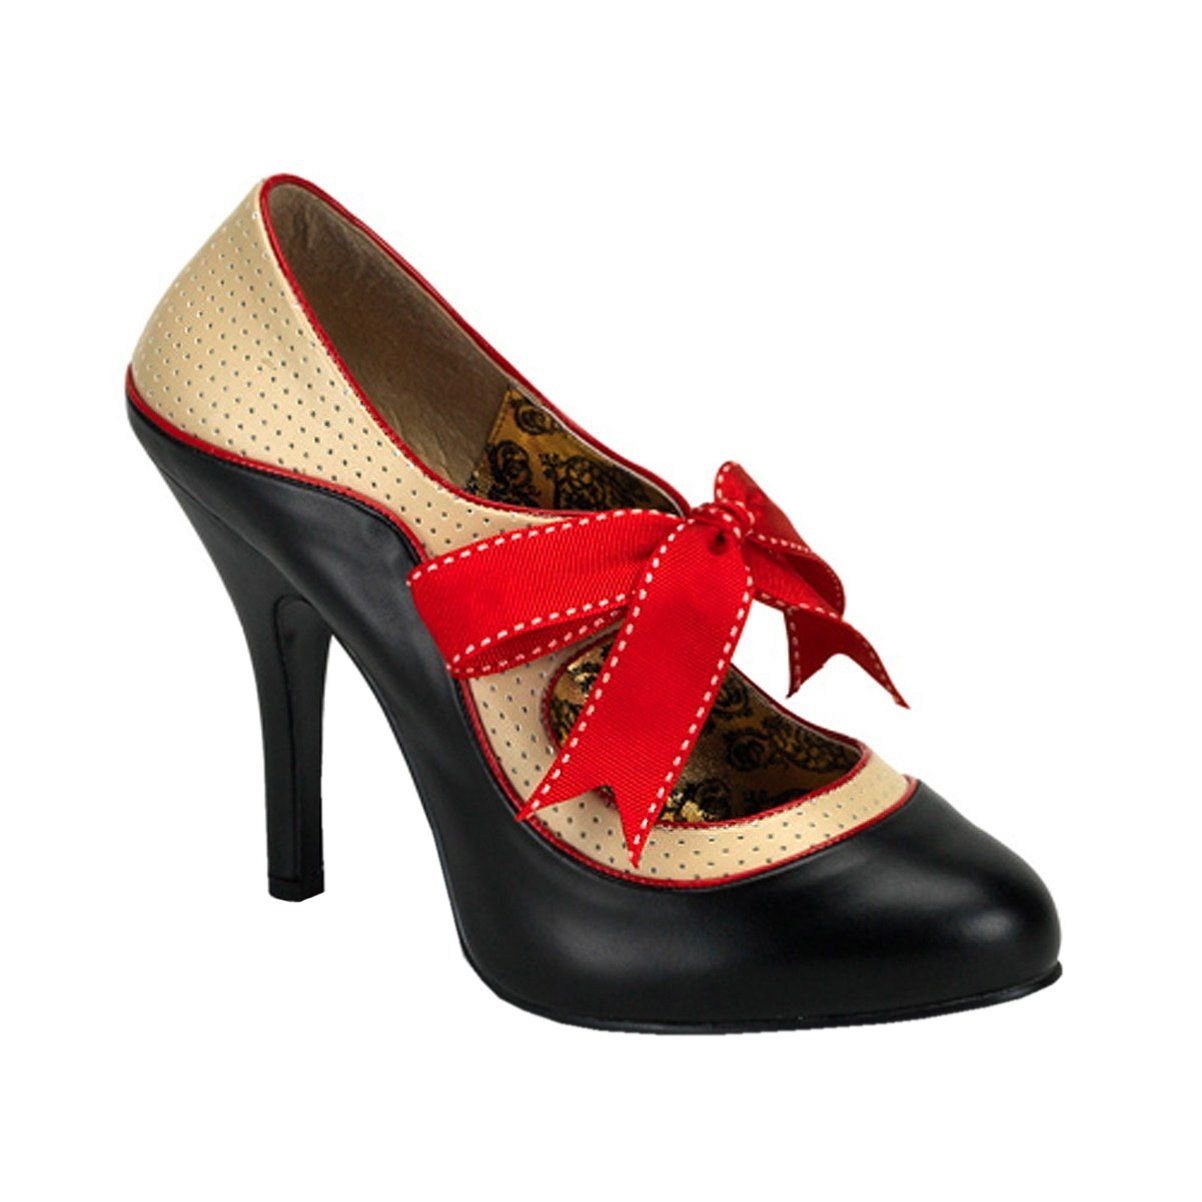 Womens Classic Mary Jane Pumps 4 1/2 Inch Heel Two Tone Shoes Red ...